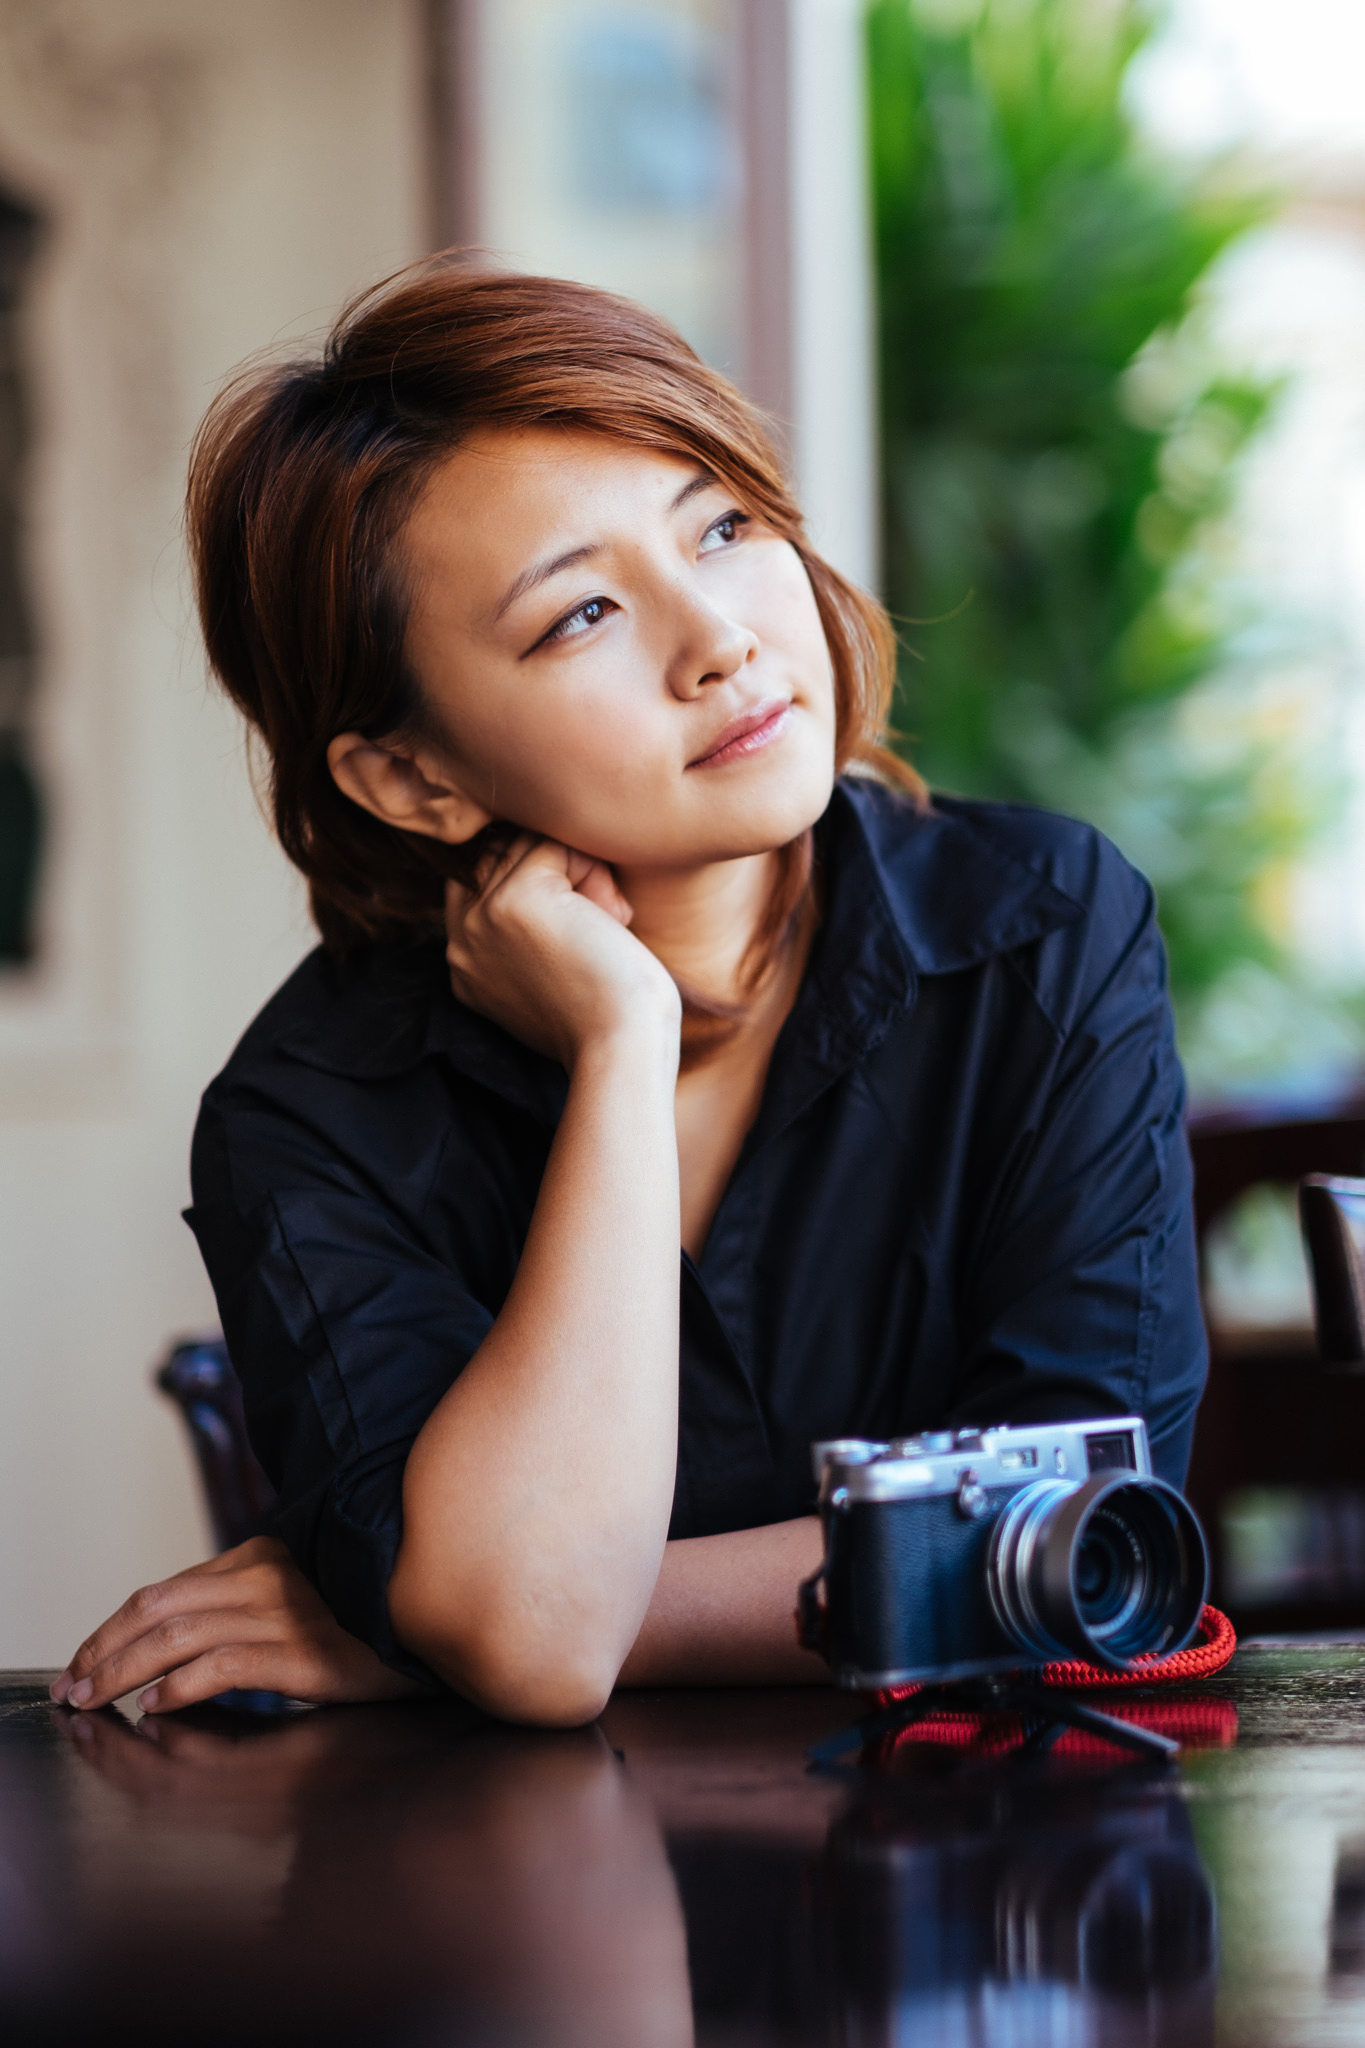 Cherry takes over my new Fuji X100S that I brought along for the trip.  Fujifilm X-T1 + XF56mm F1.2